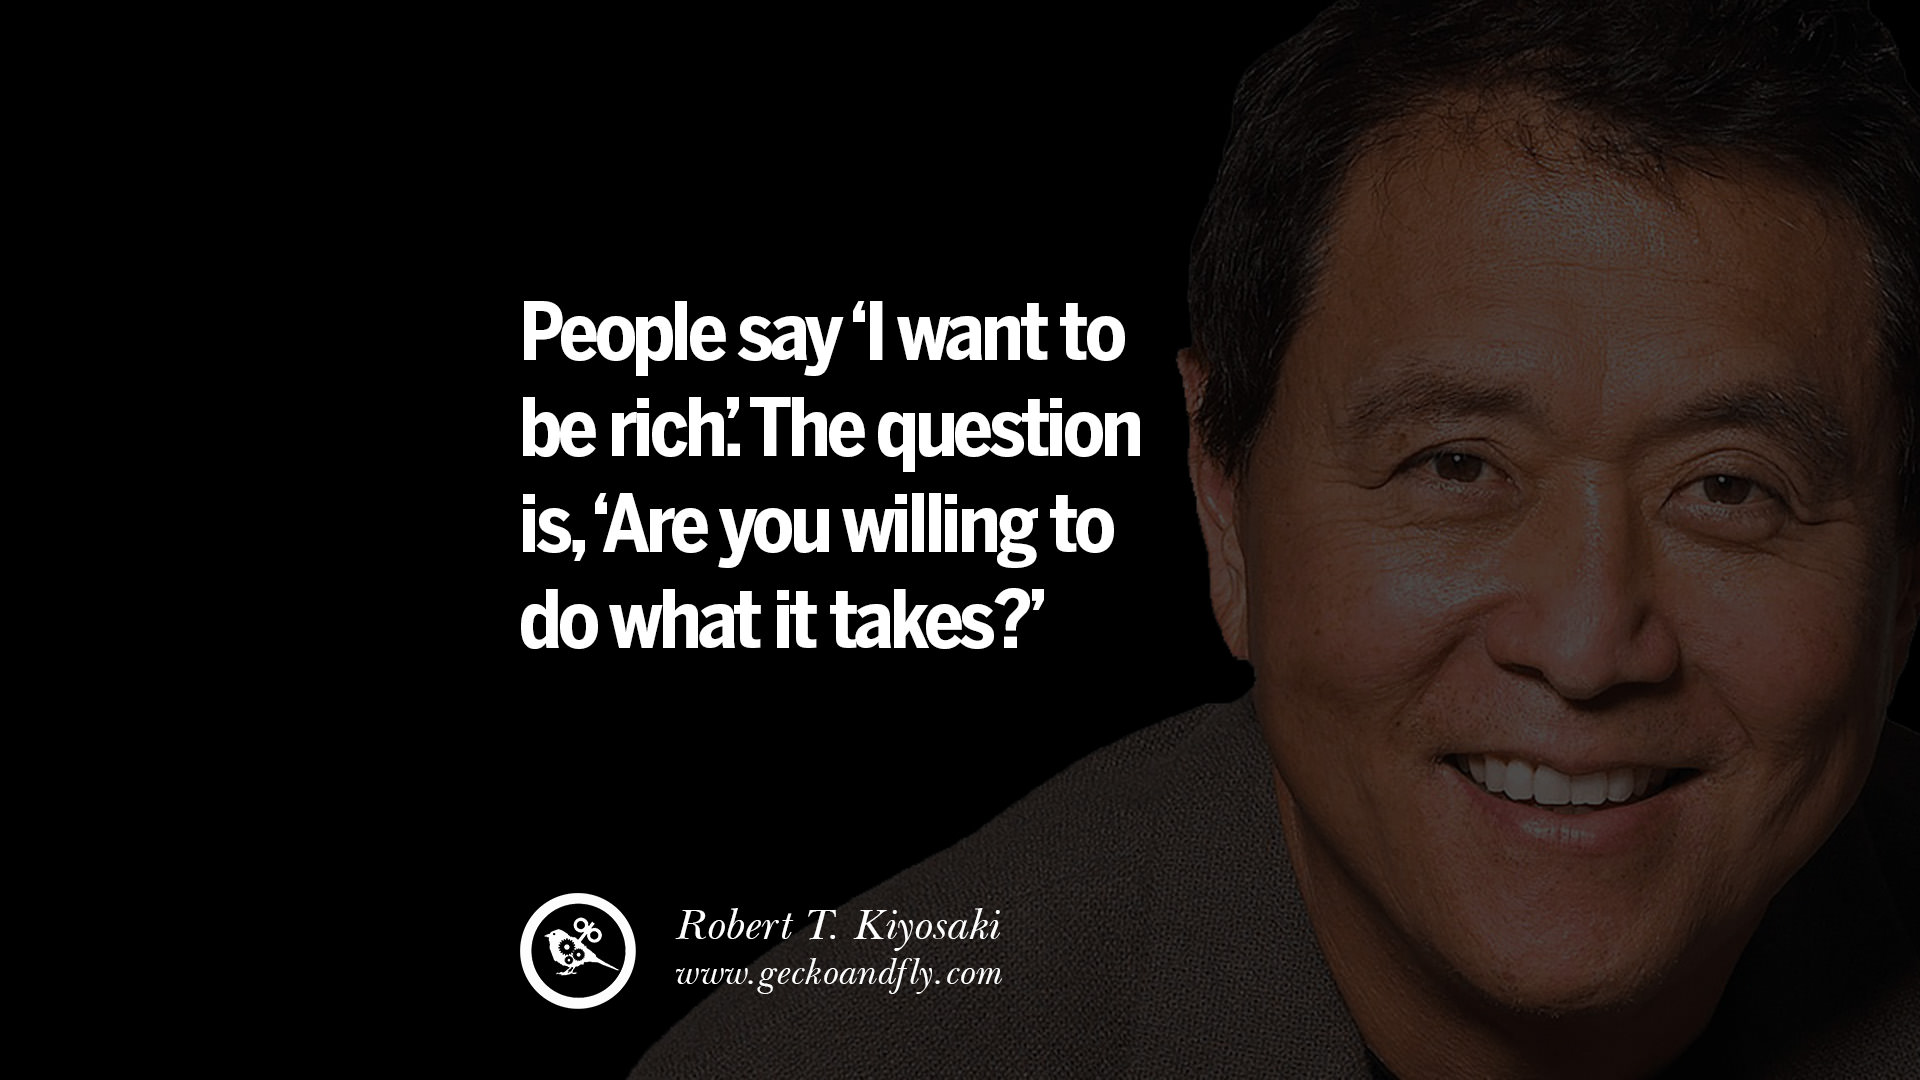 60 Motivational Robert T Kiyosaki Quotes For Selling